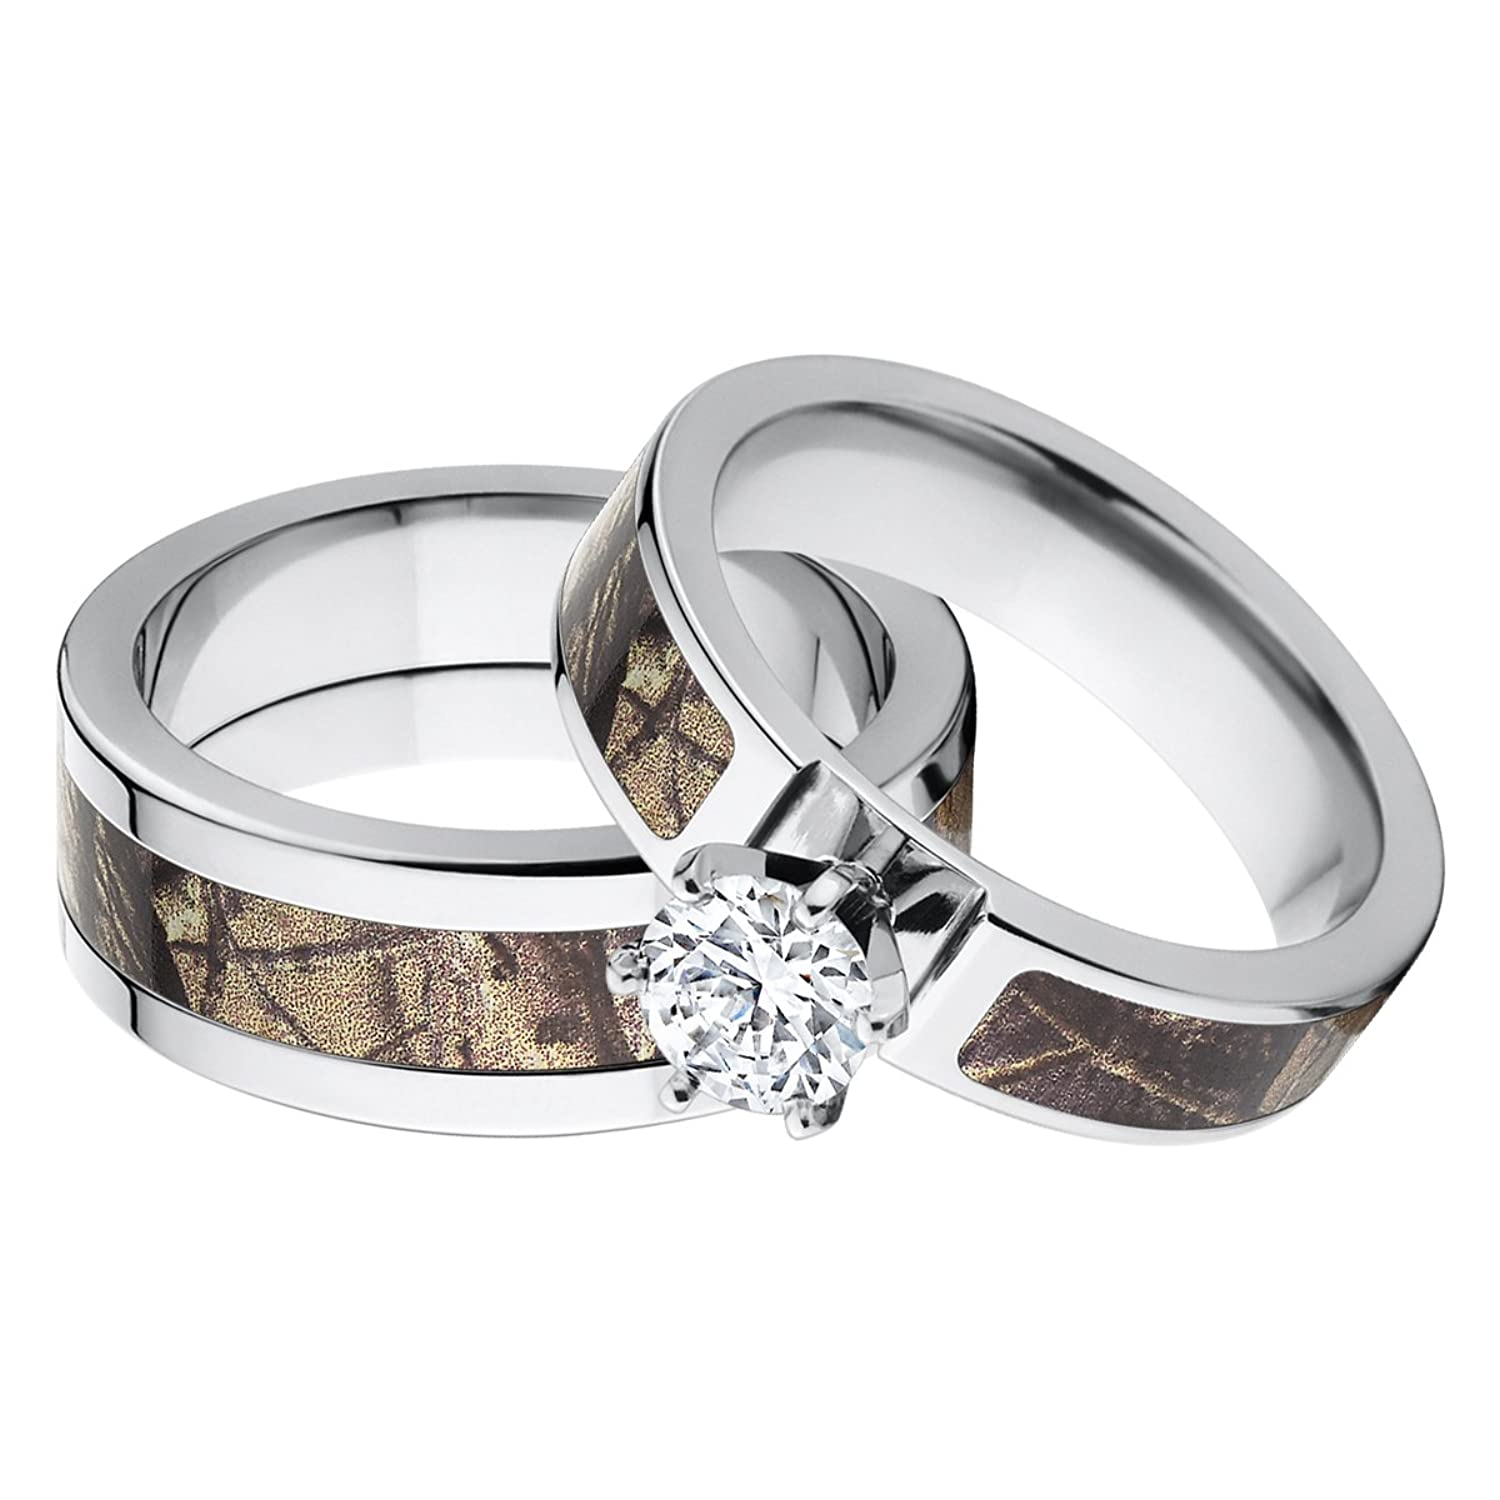 amazoncom his and hers matching realtree ap camouflage wedding ring set jewelry - Wedding Rings Sets For Her